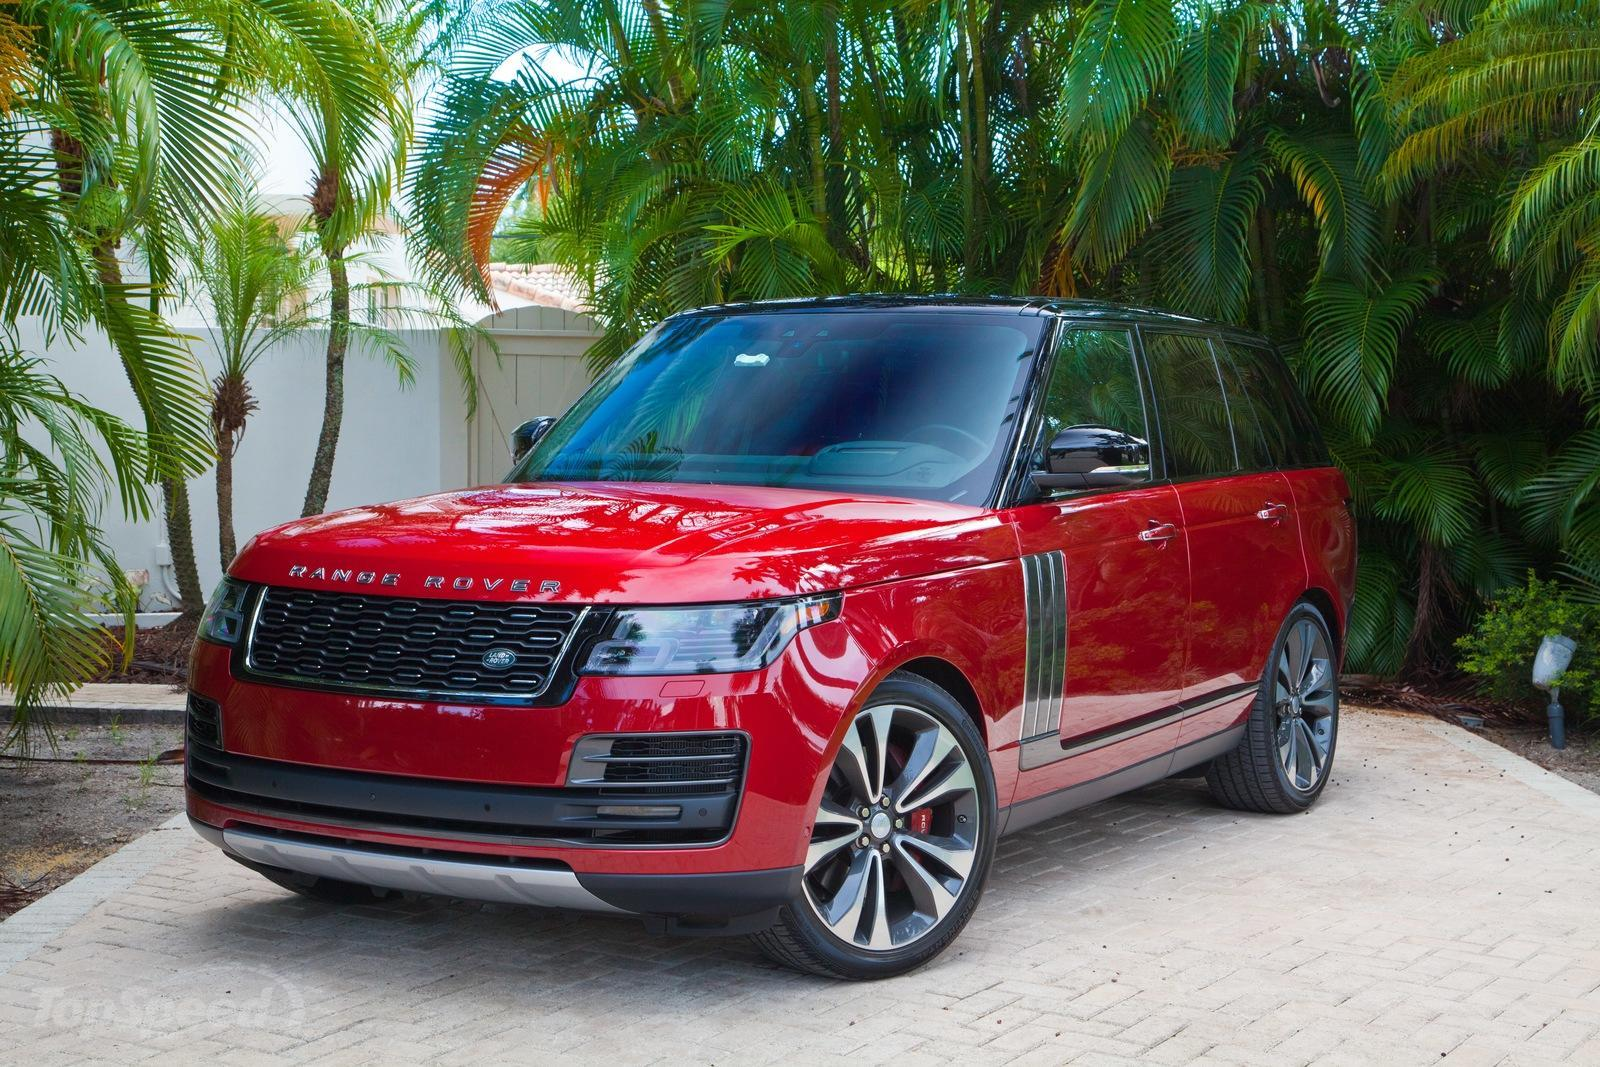 How Much Is A Land Rover >> 2019 Land Rover Range Rover SV Autobiography By SVO - Driven Pictures, Photos, Wallpapers. | Top ...